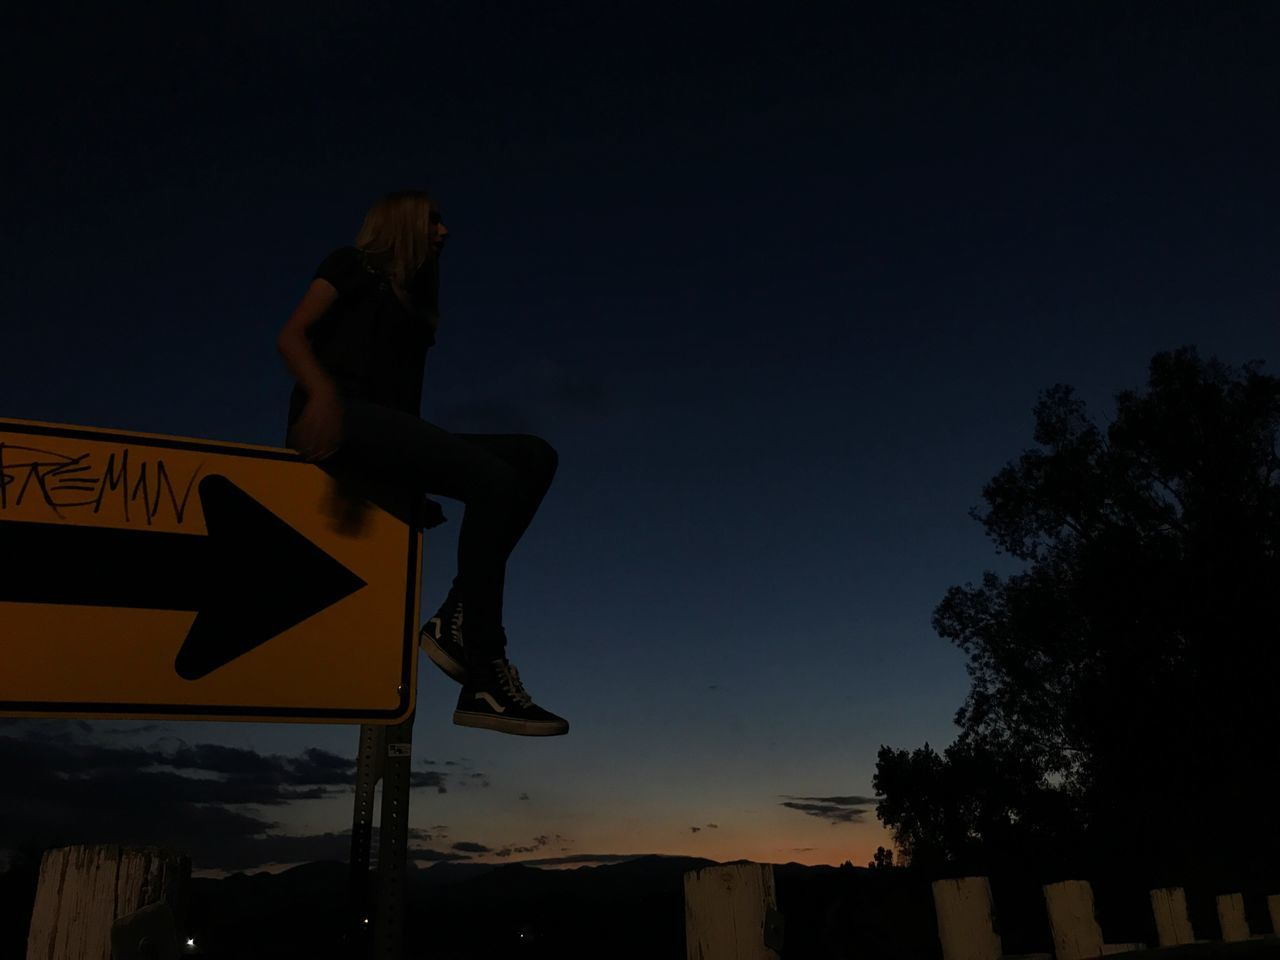 communication, road sign, direction, outdoors, low angle view, night, silhouette, clear sky, sky, one person, people